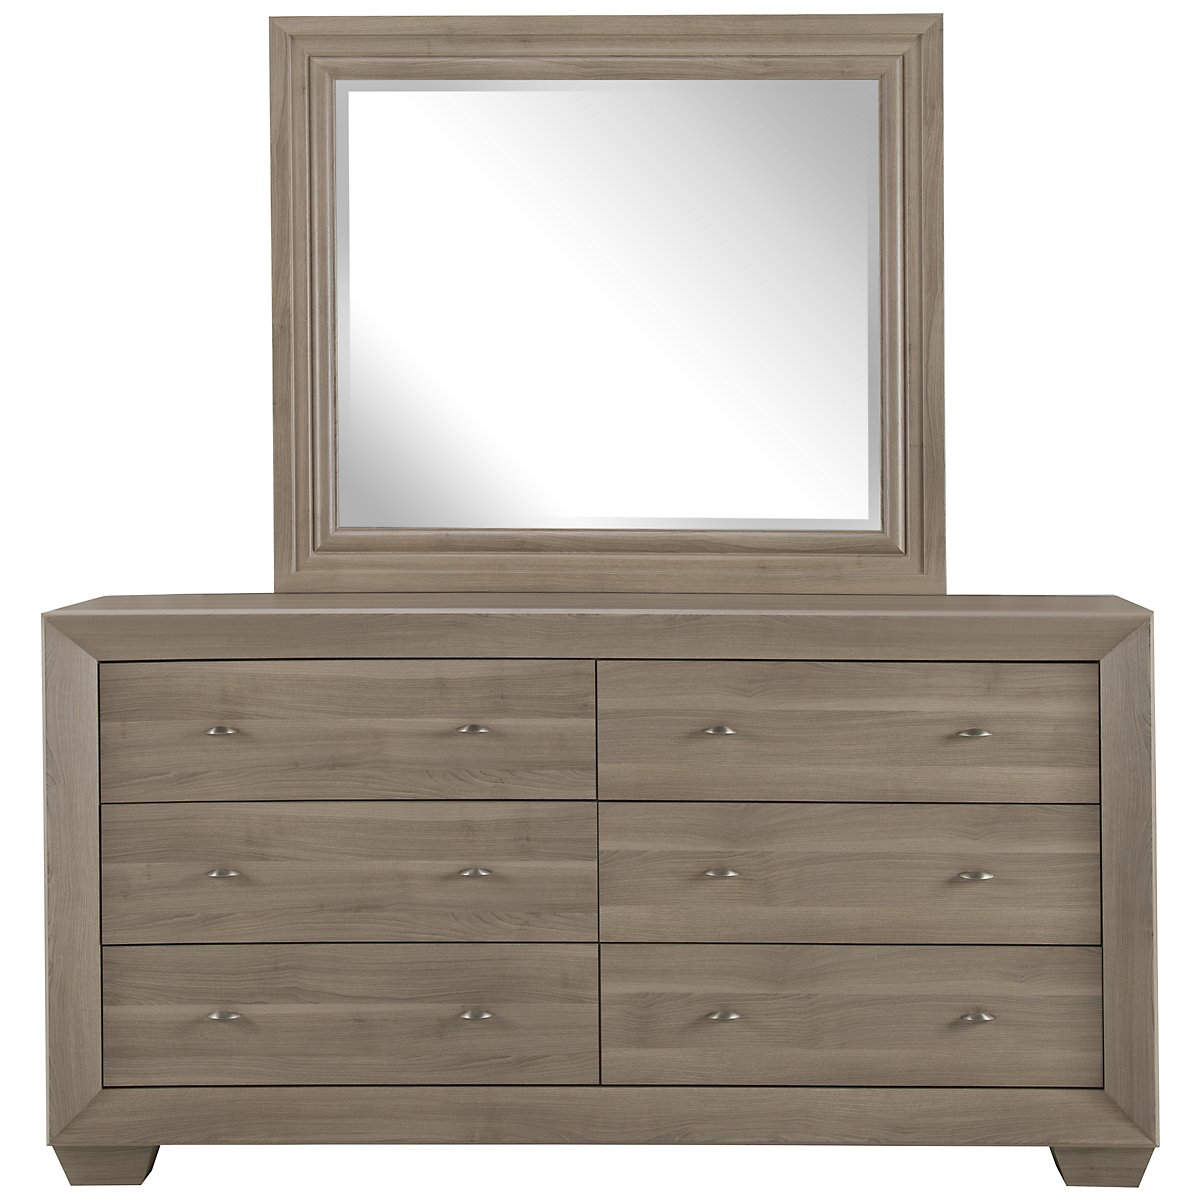 City Furniture Adele2 Light Tone Dresser Mirror